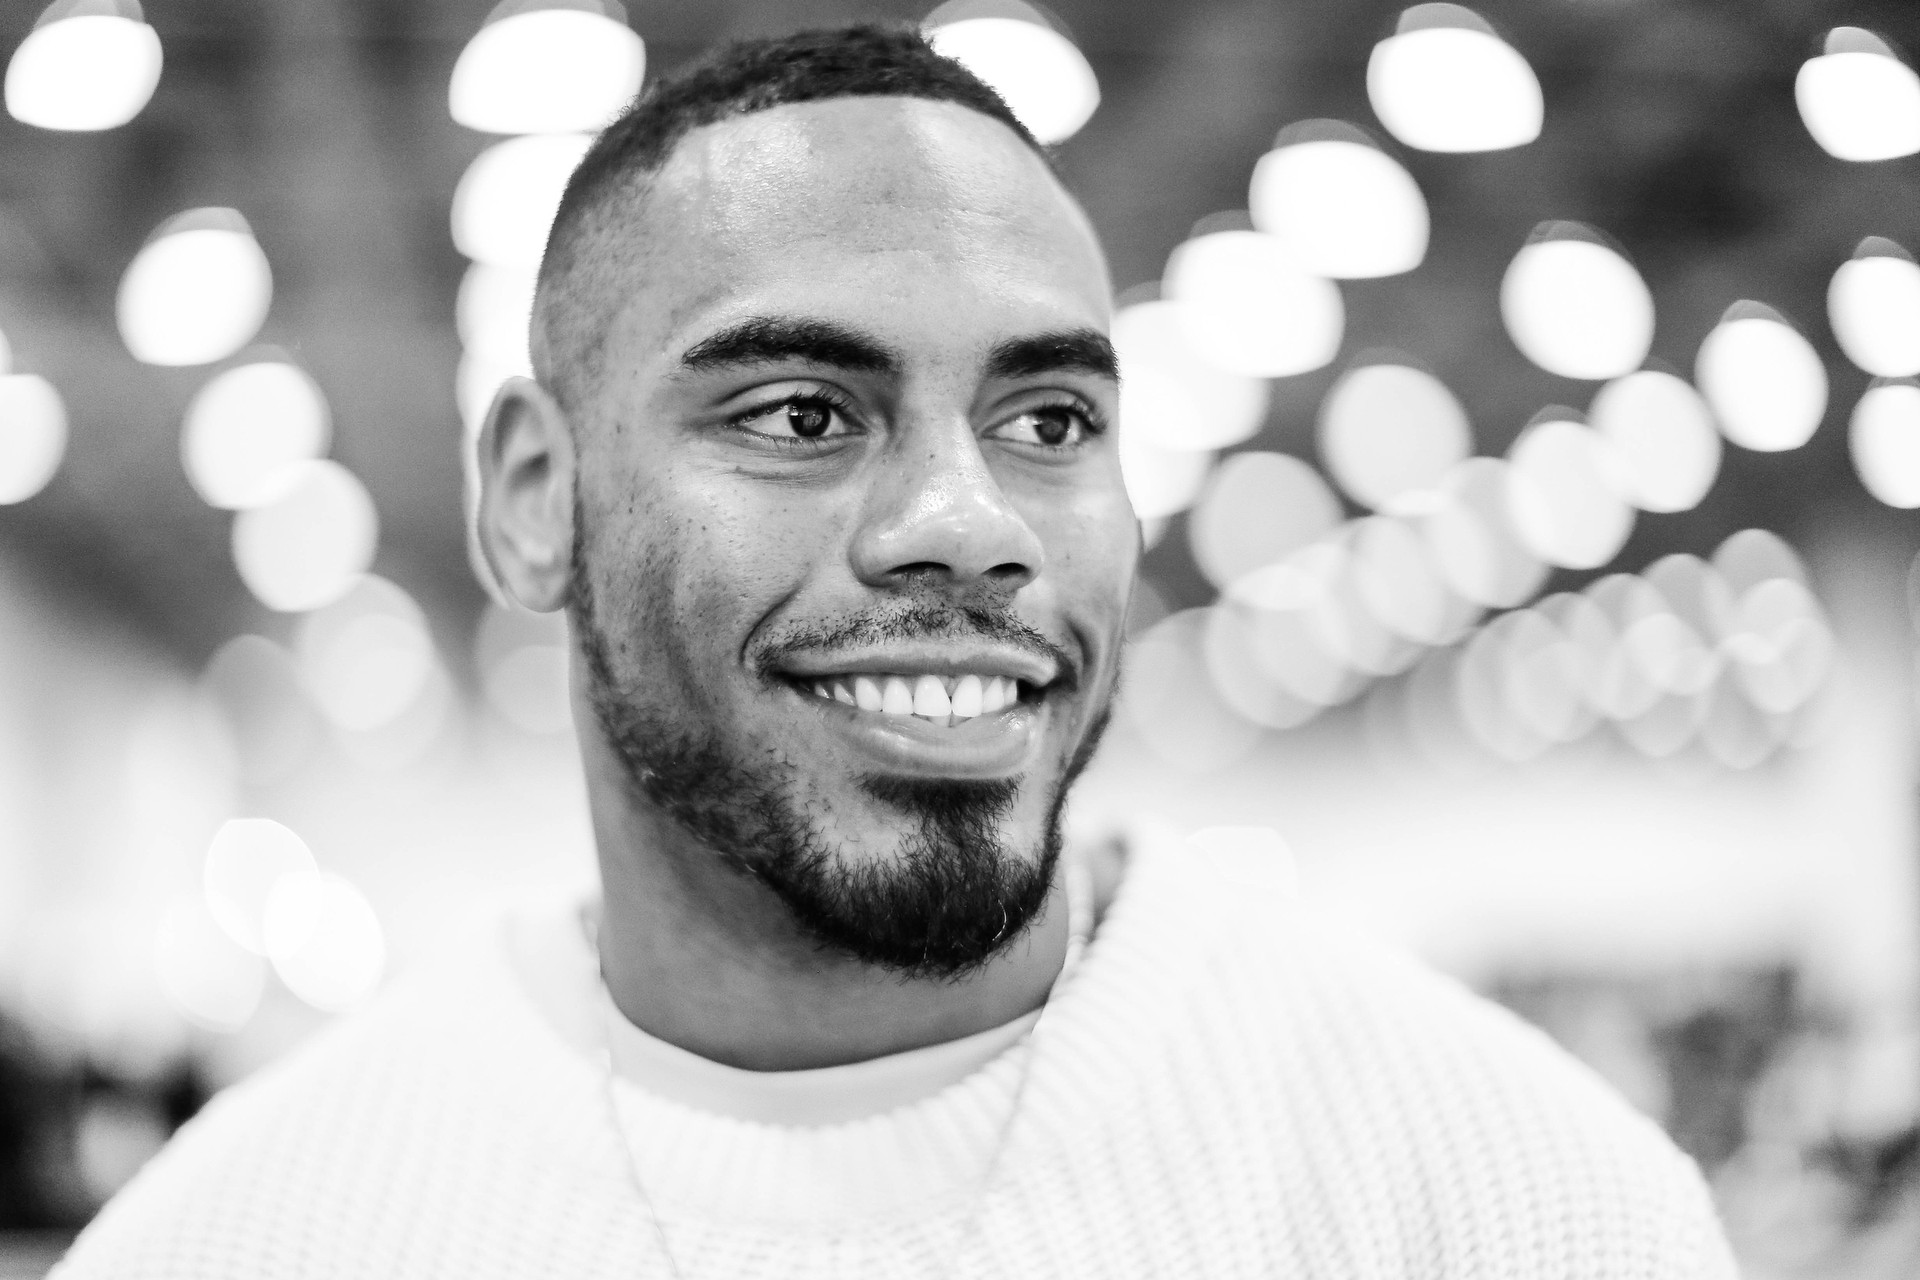 Rashad Jennings of the New York Giants paid a visit.